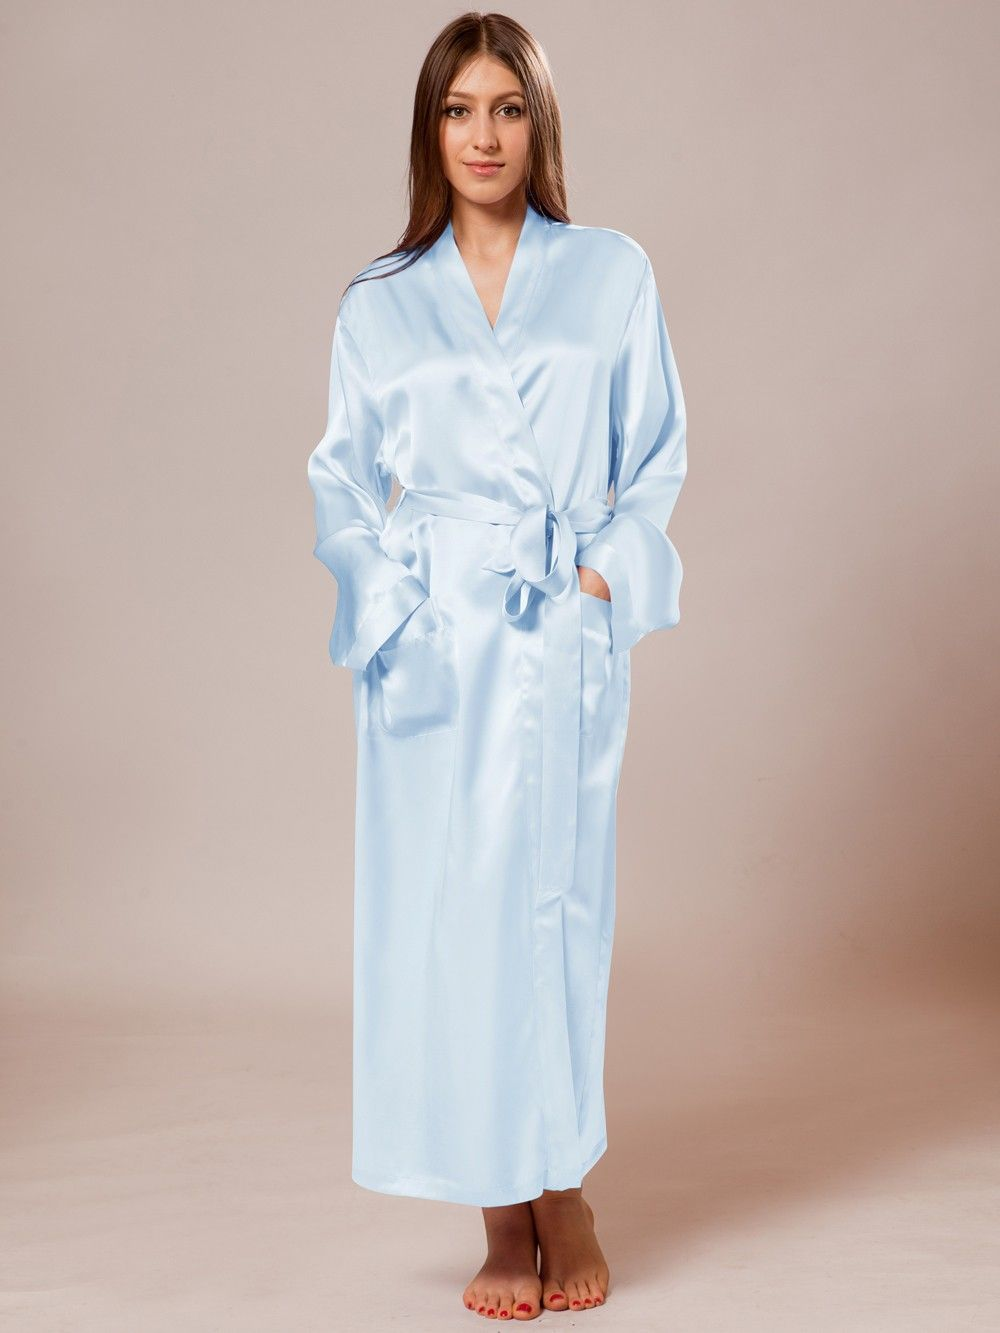 903a84aeb5 Shop blue silk robe for women. Made of 100% 22 mm mulberry silk